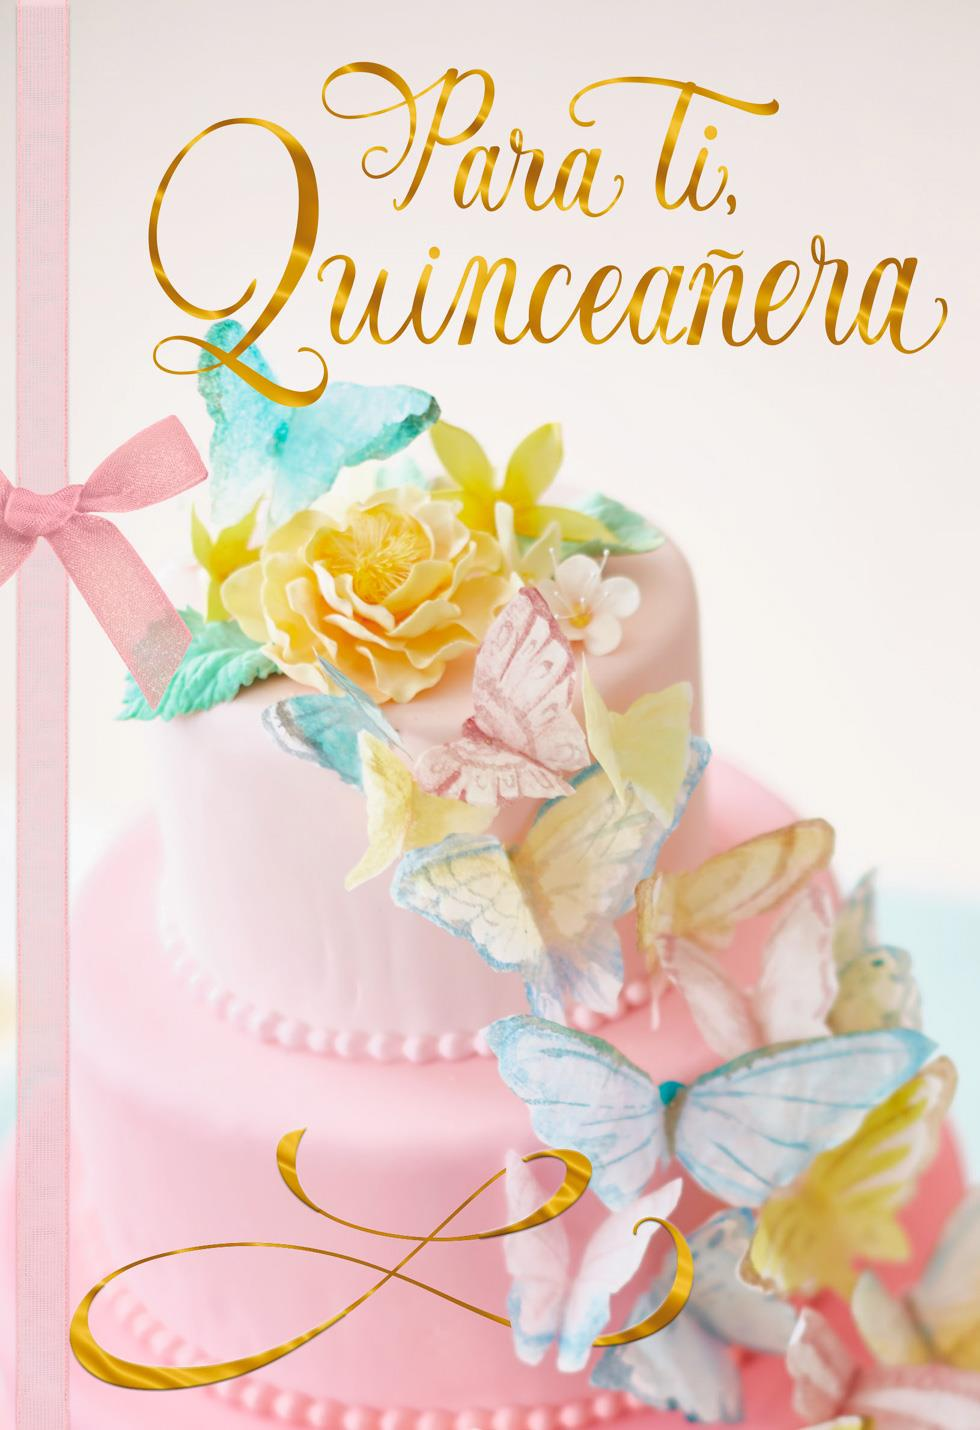 Butterfly cake spanish language quinceaera card greeting cards butterfly cake spanish language quinceaera card bookmarktalkfo Gallery